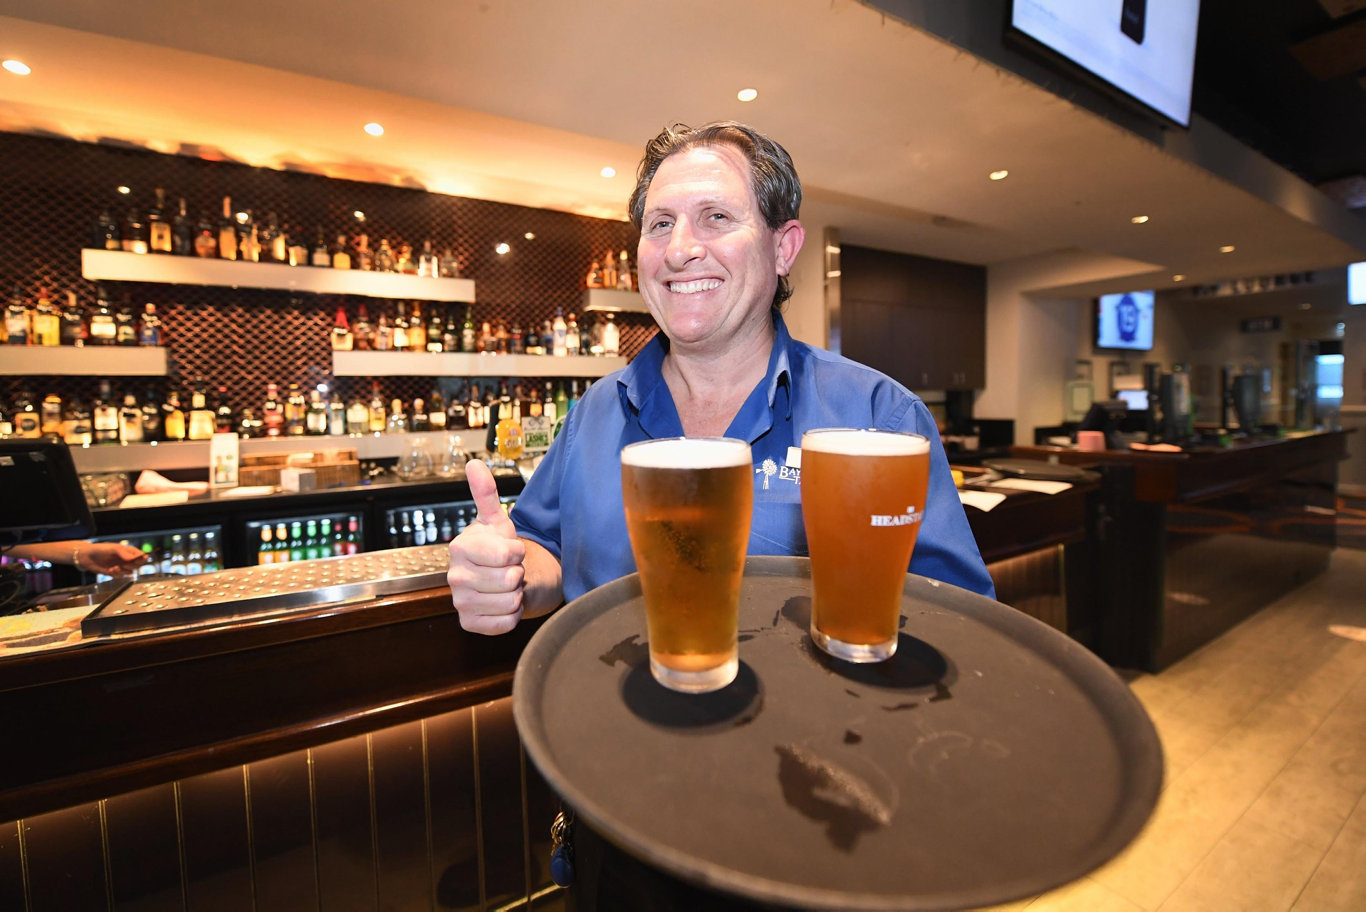 Pubs are back - Bay Central Tavern Venue Manager Paul Limbrick. Photo: Cody Fox